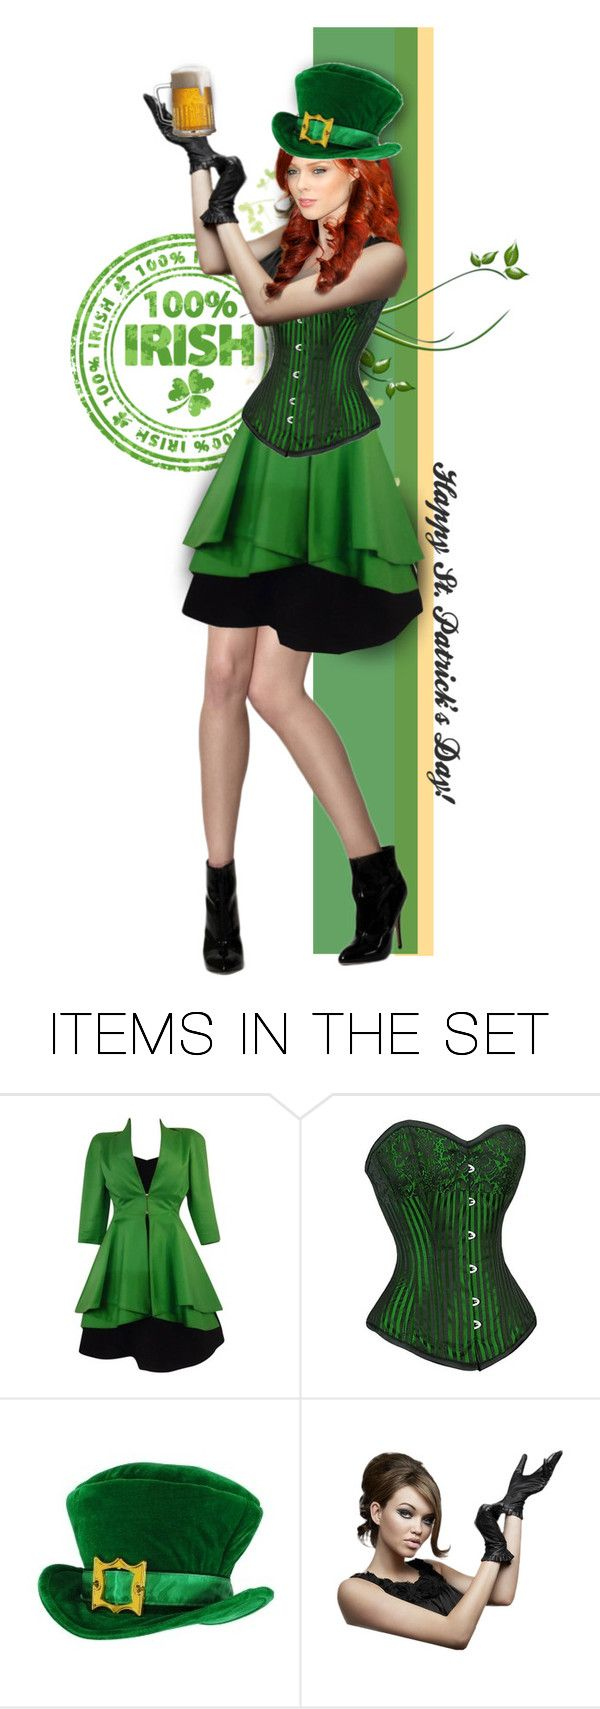 """Happy St. Patrick's 2016!"" by anna-nemesis ❤ liked on Polyvore featuring art, Irish, stpatricksday and 2016"